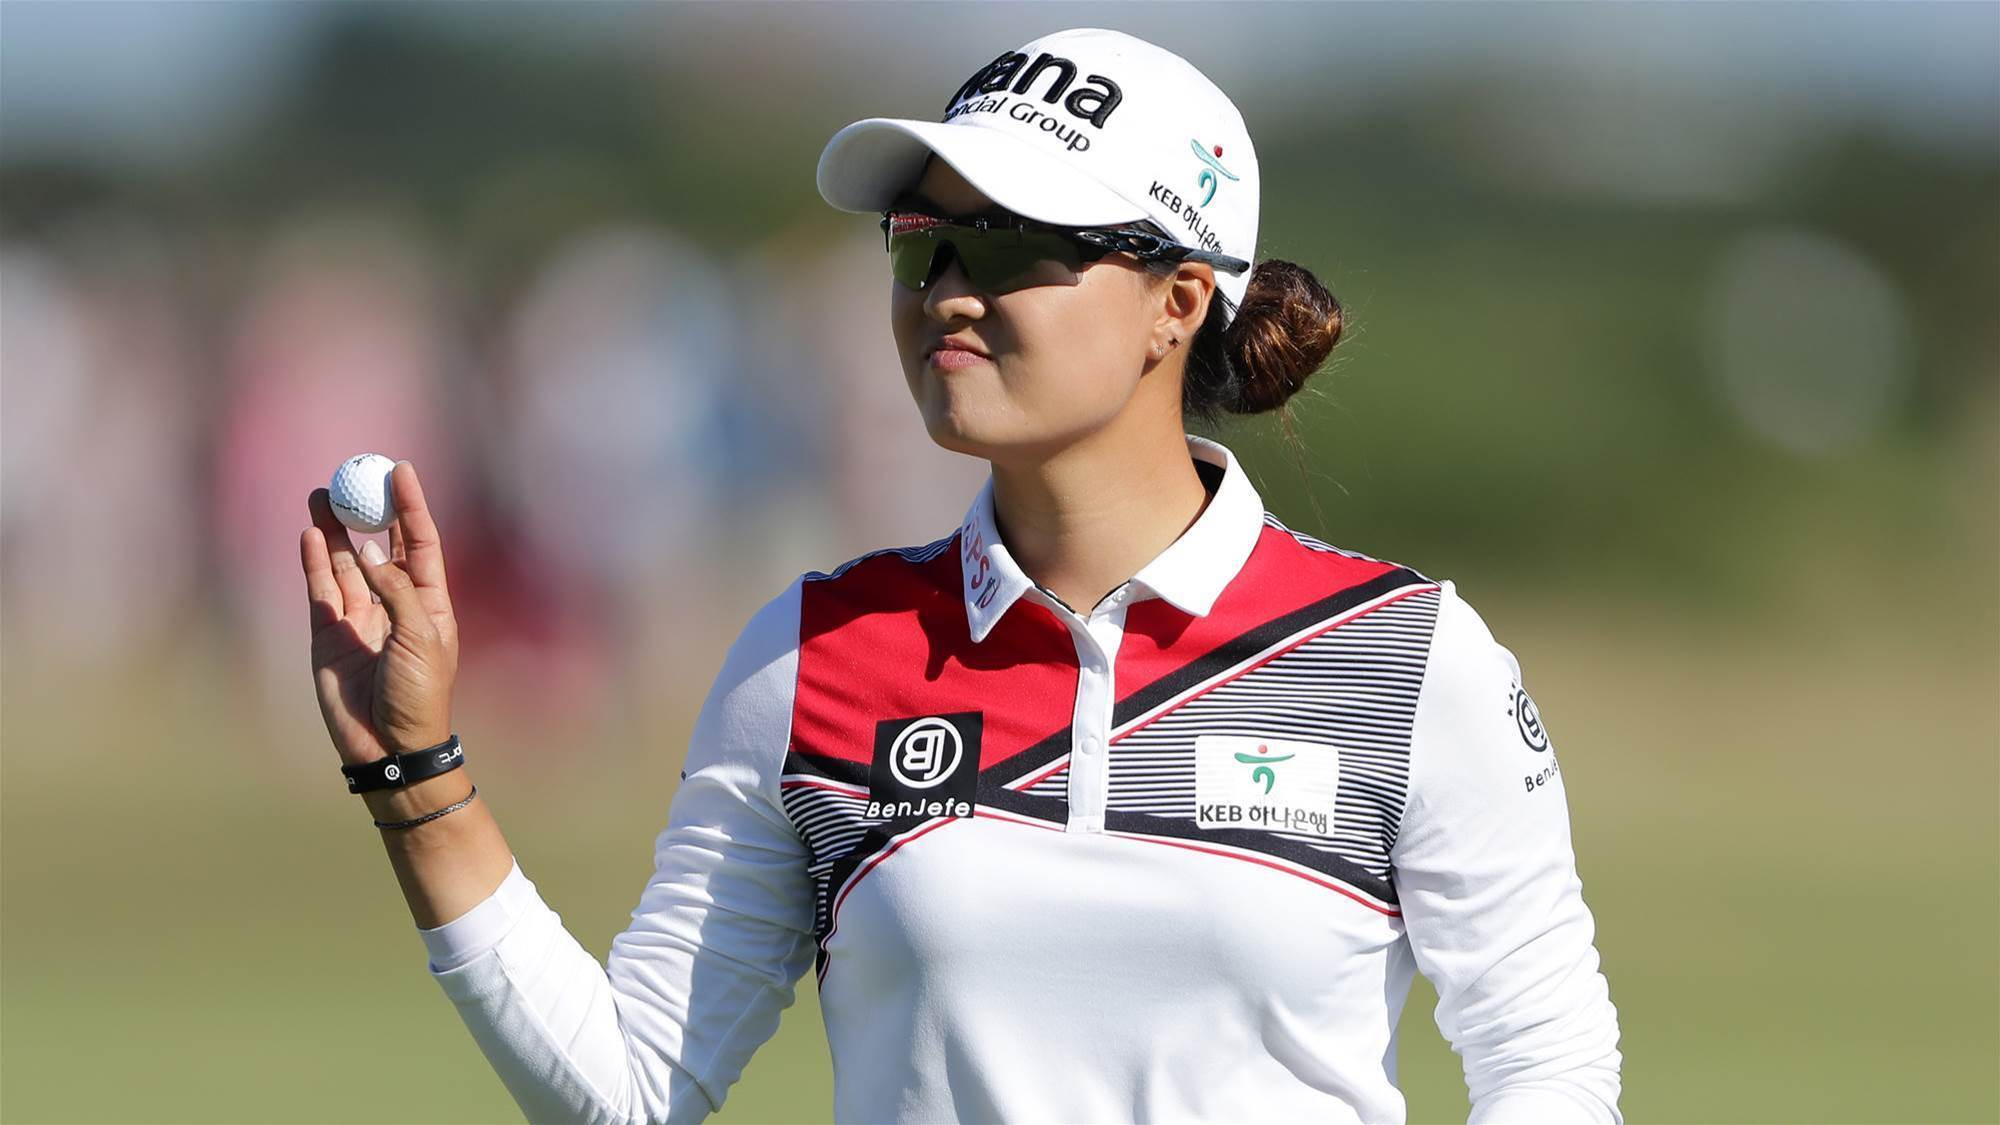 Minjee Lee leading Women's British Open